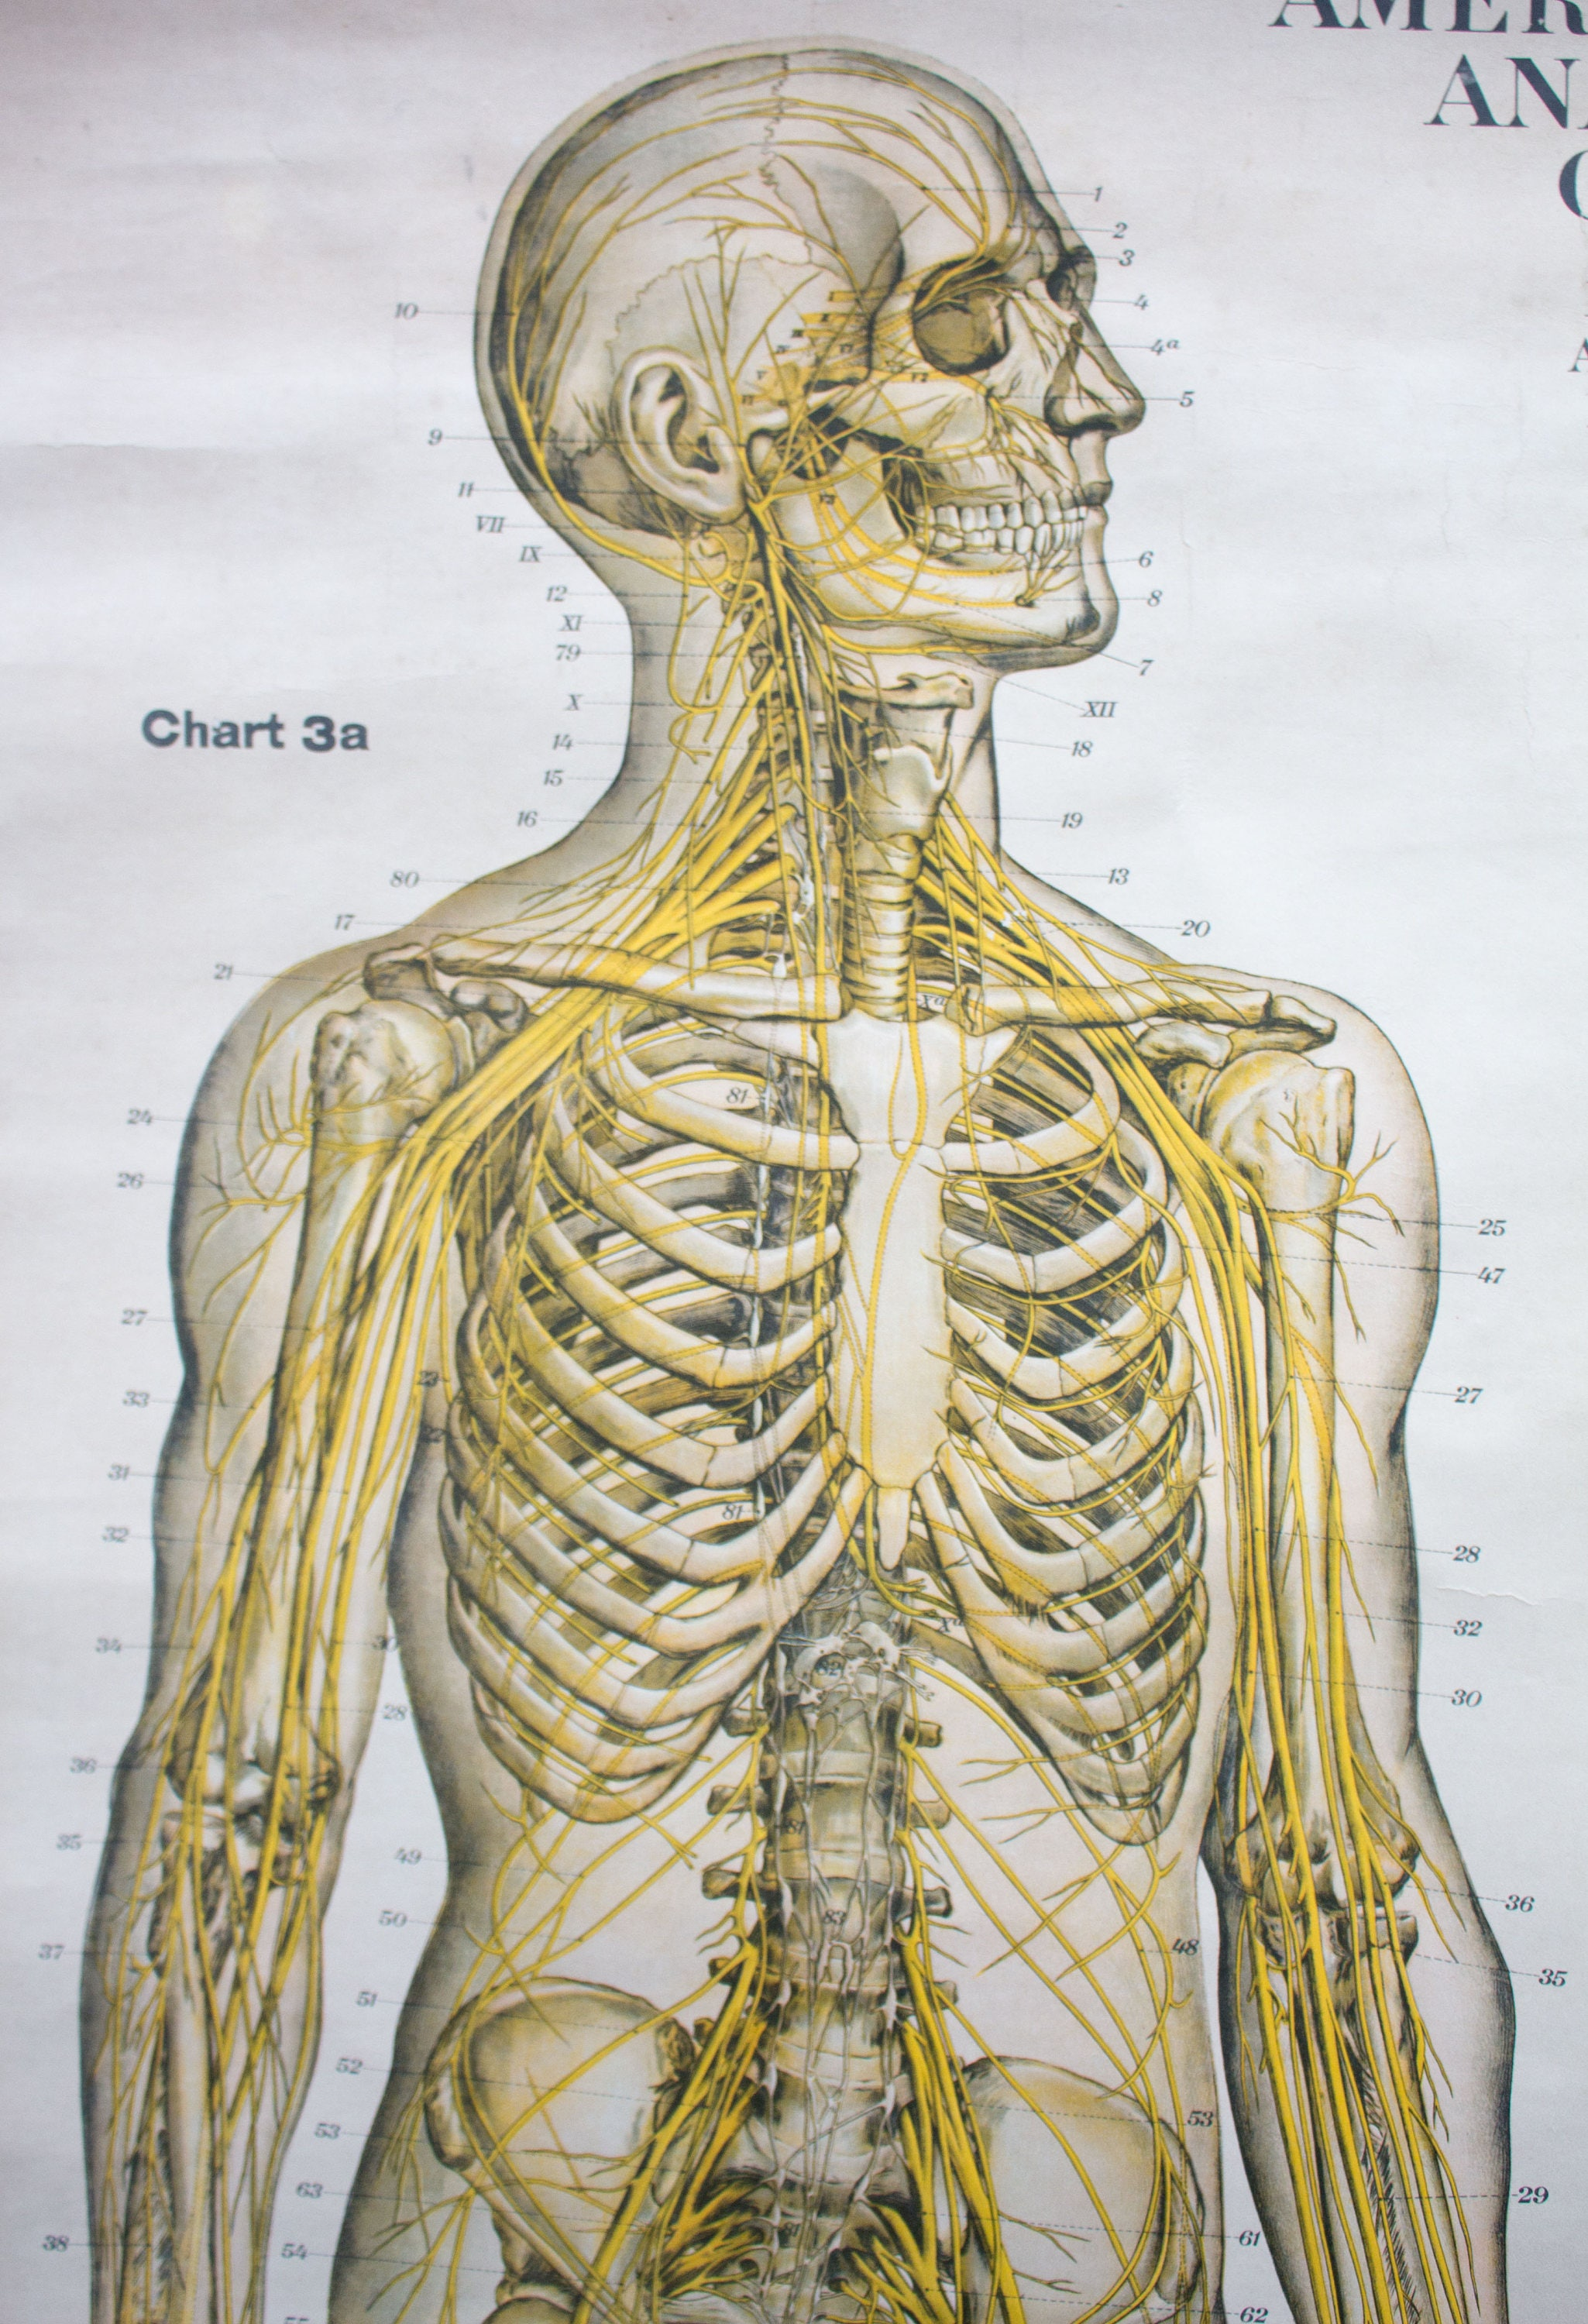 Funky Anatomy Charts Australia Composition - Anatomy and Physiology ...